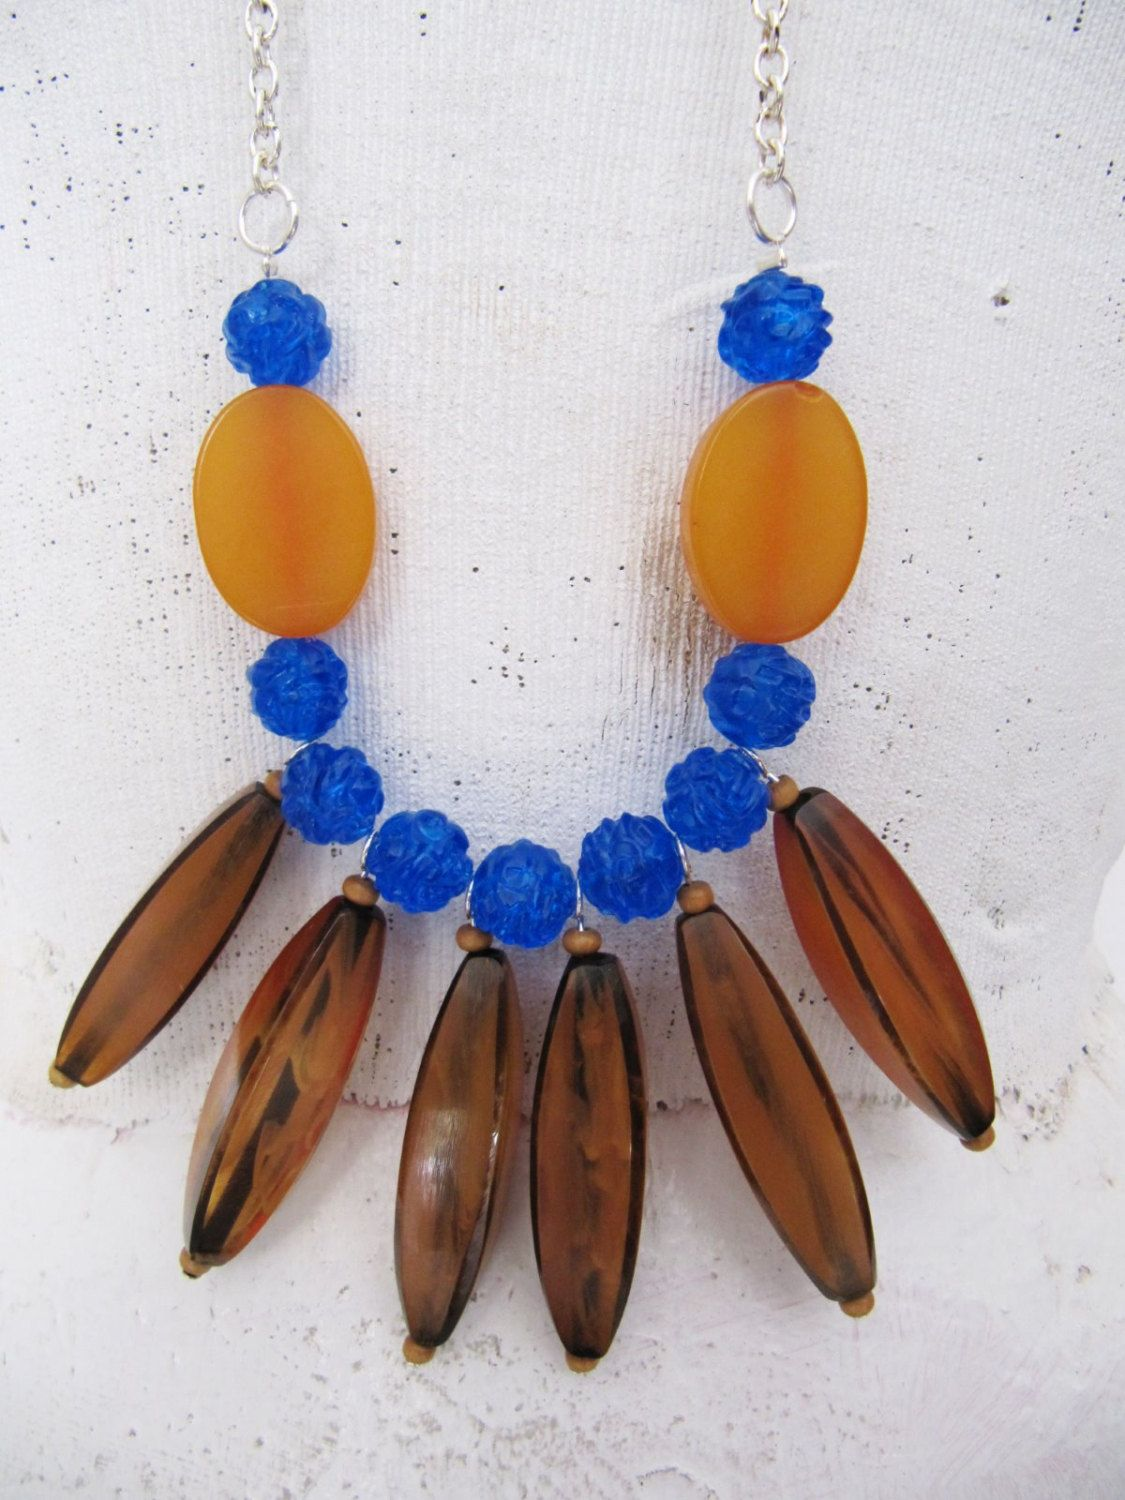 Long Statement Necklace   Bib Necklace   Amber Color Resin Beads, Plastic Blue Beads, Silver Plated Chain   Hand-Made - One-of-a-Kind by TheTreasureBoxOrna on Etsy